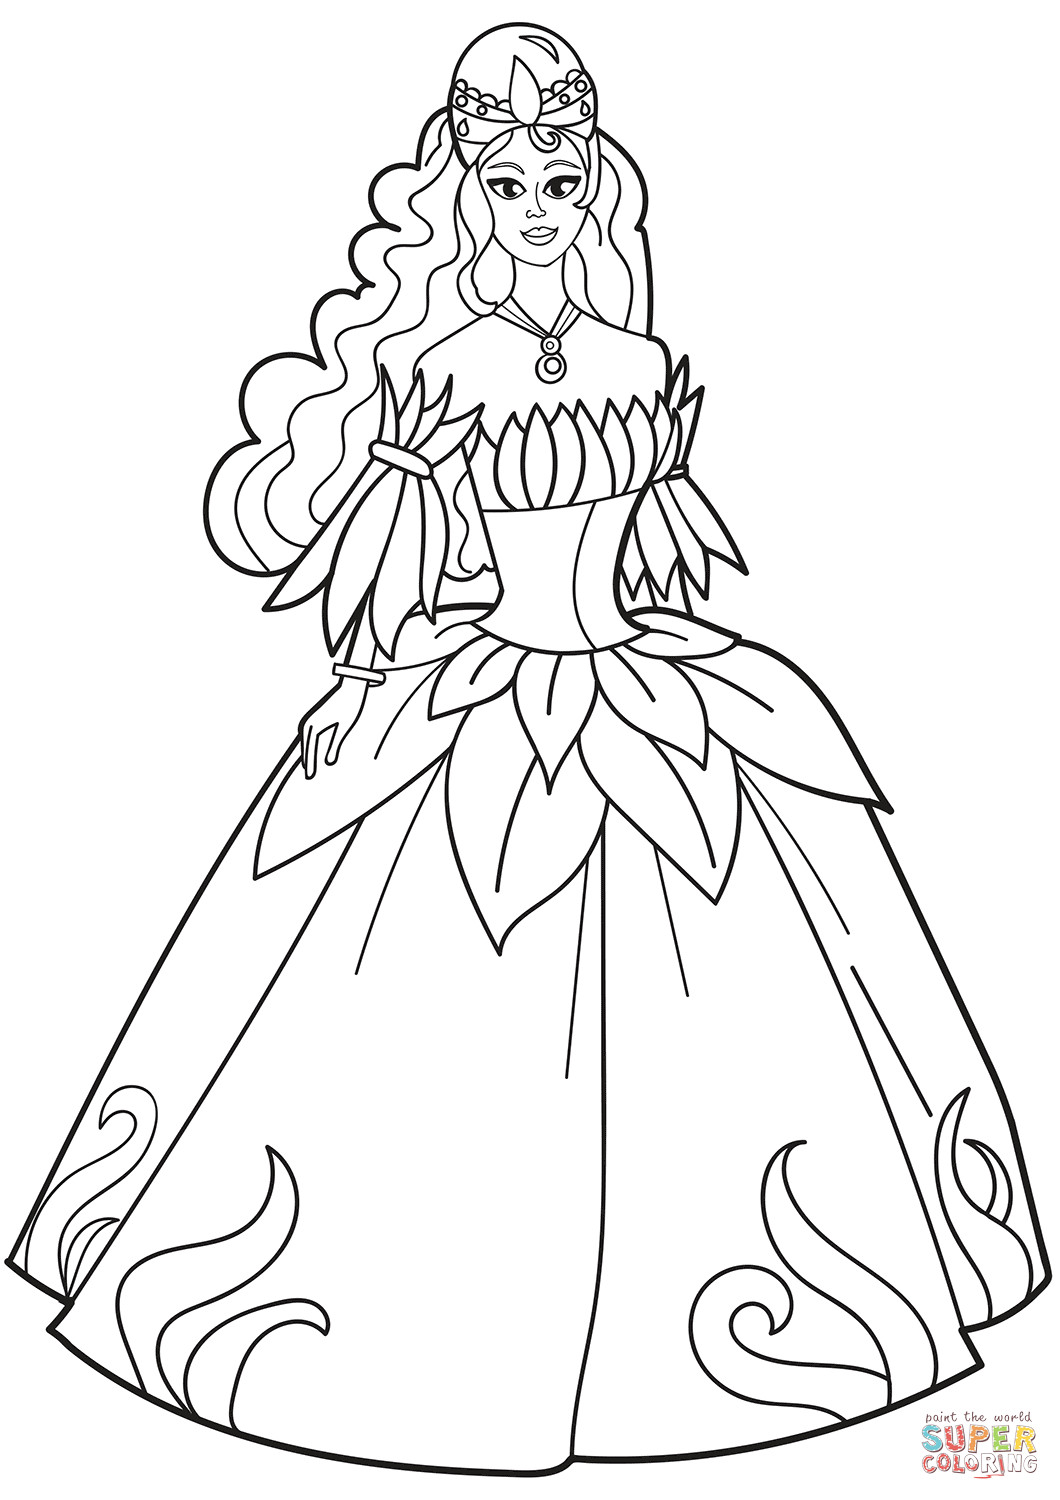 Coloring Sheets For Girls Princess Dresses  Princess in Flower Dress coloring page